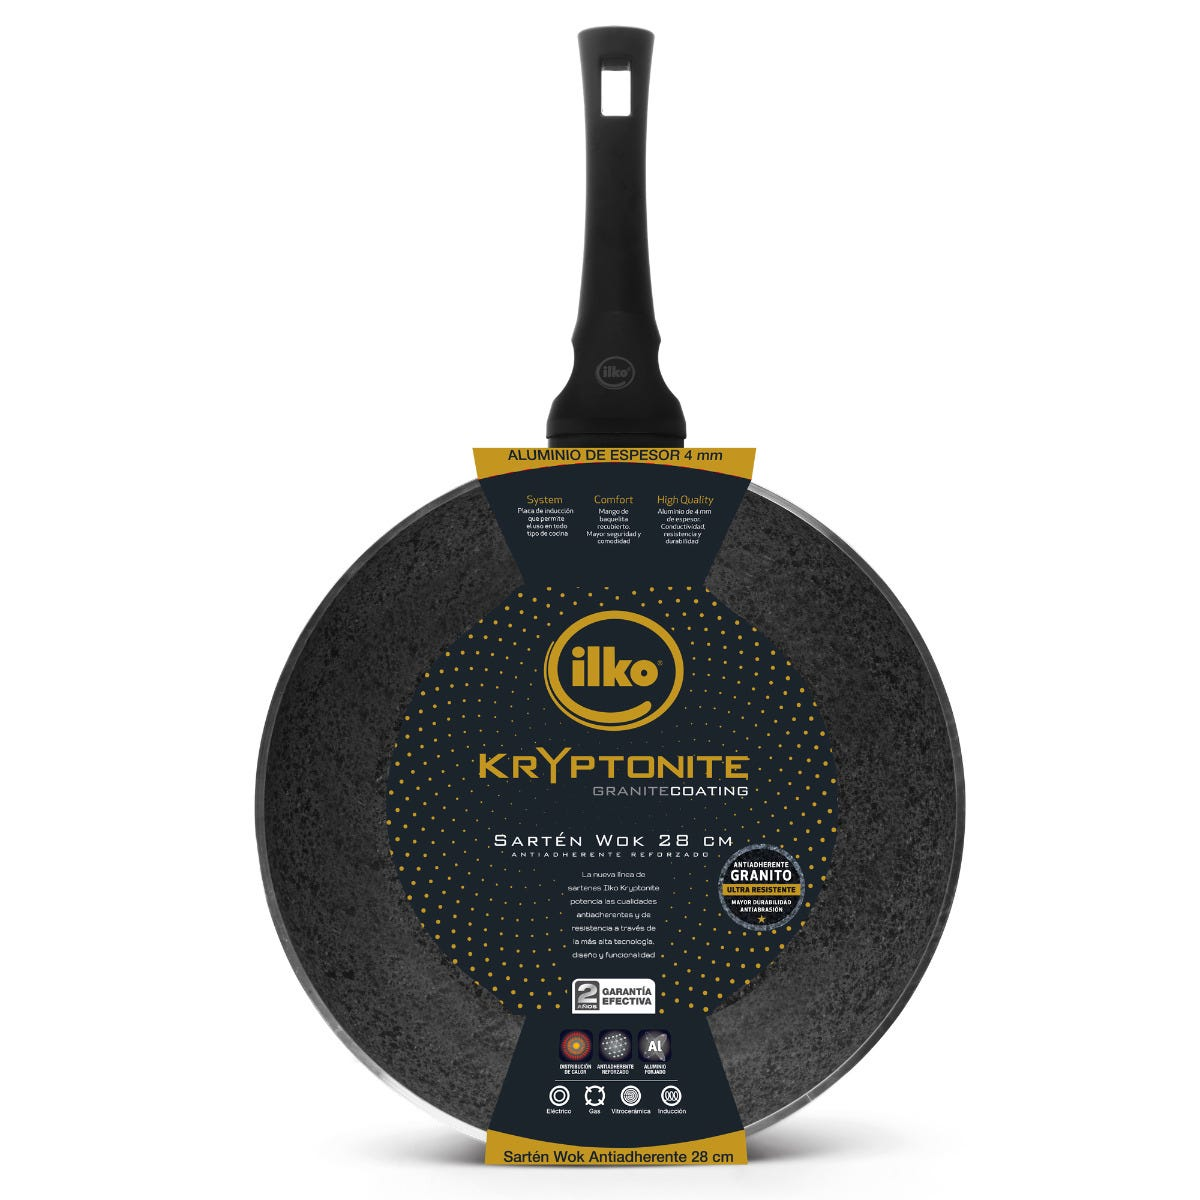 Wok antiadherente ILKO® Kryptonite de 28 cm